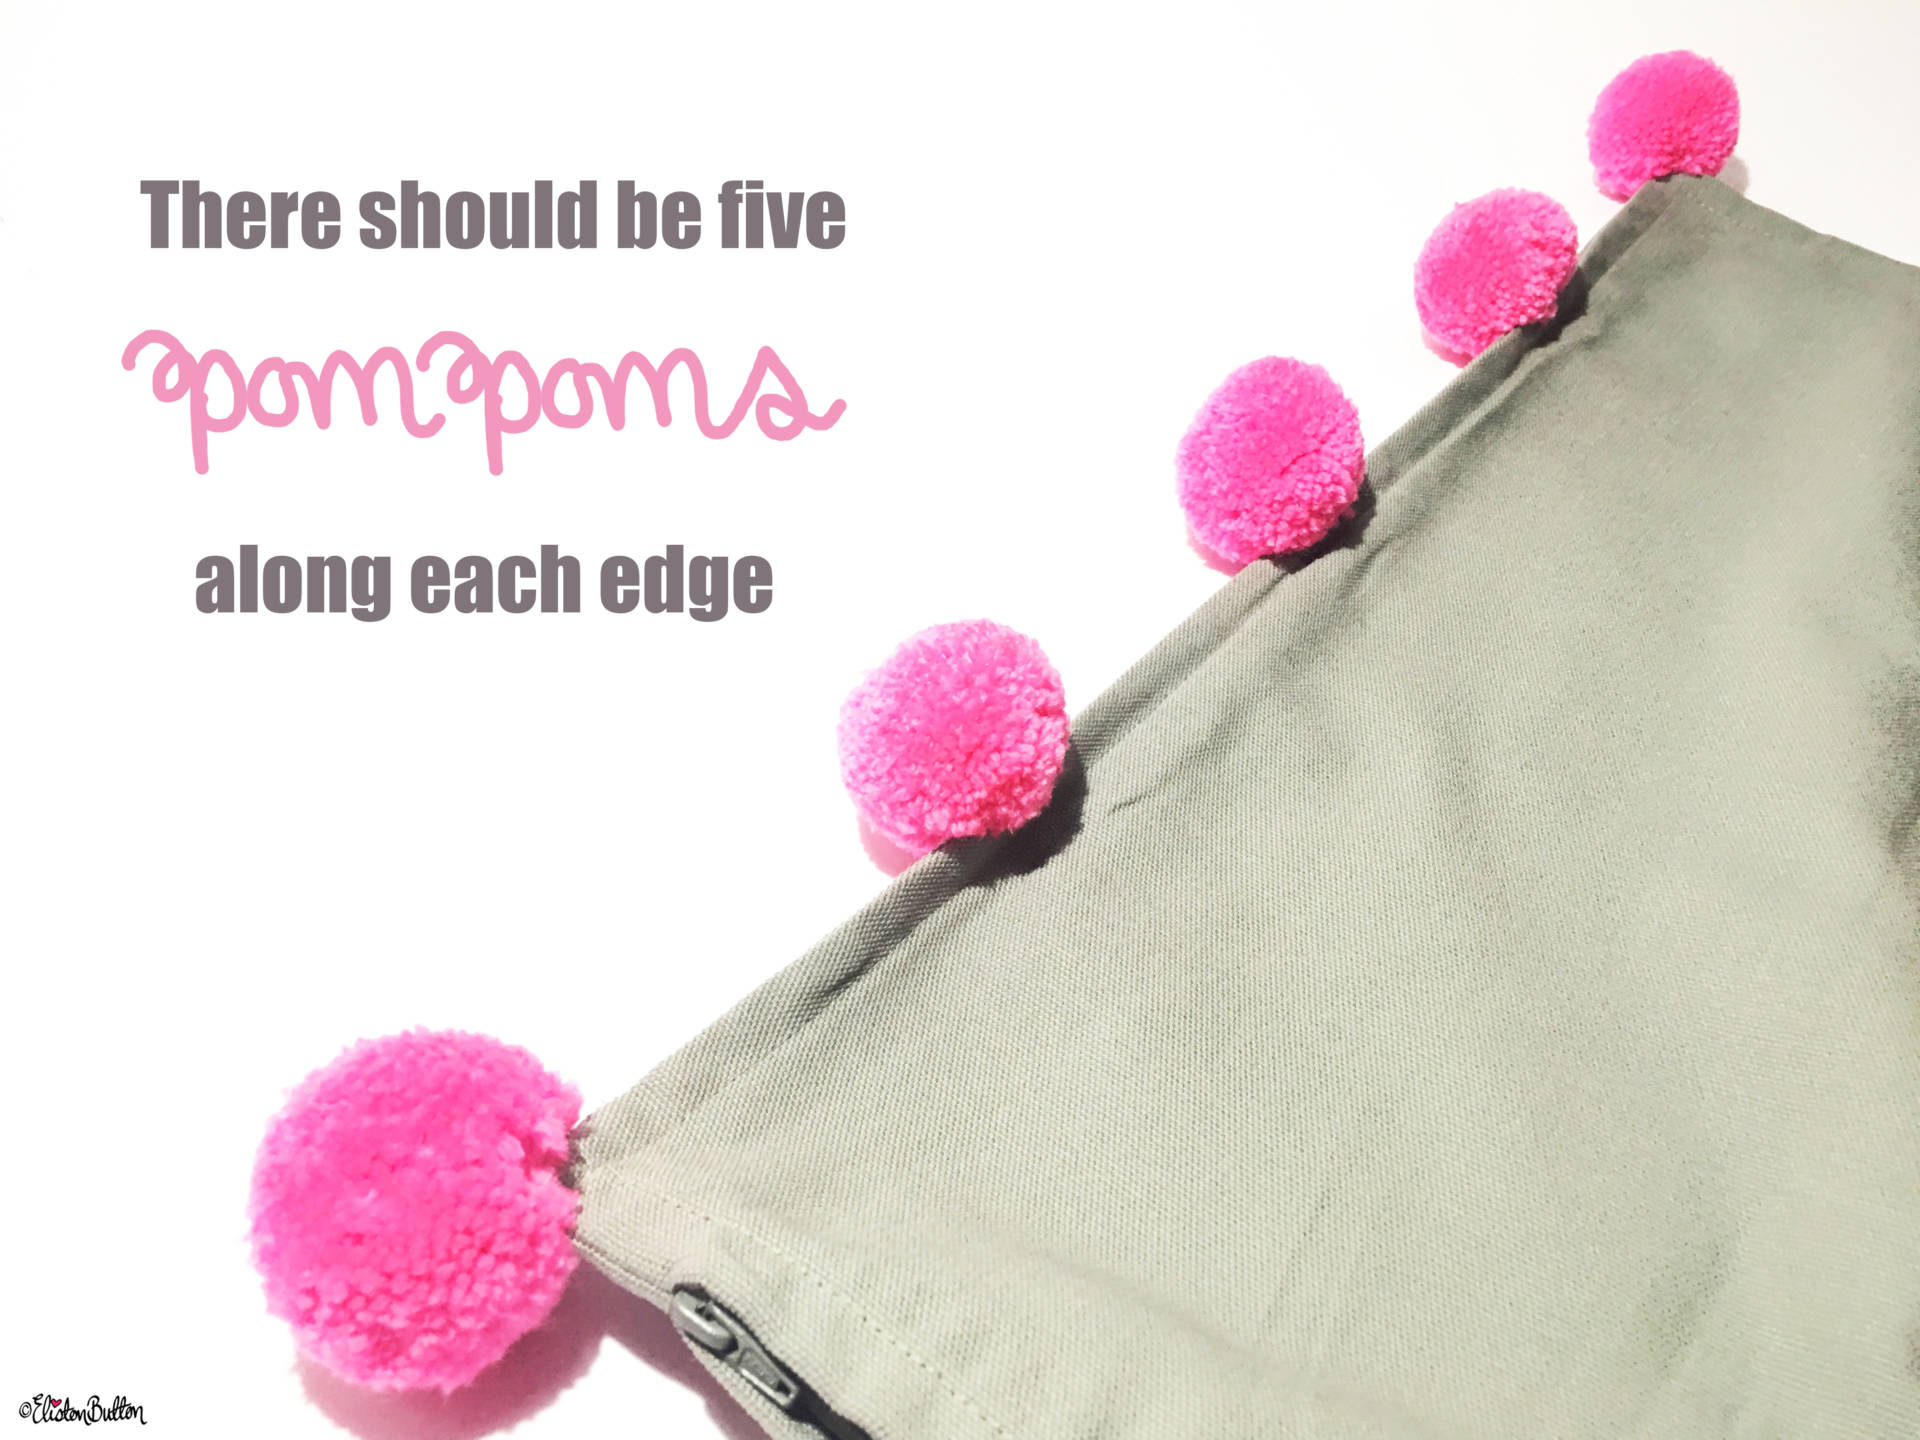 19. So that there are Five Pom Poms Along Each Edge - Tutorial Tuesday – Pom Pom Cushion Cover at www.elistonbutton.com - Eliston Button - That Crafty Kid – Art, Design, Craft & Adventure.